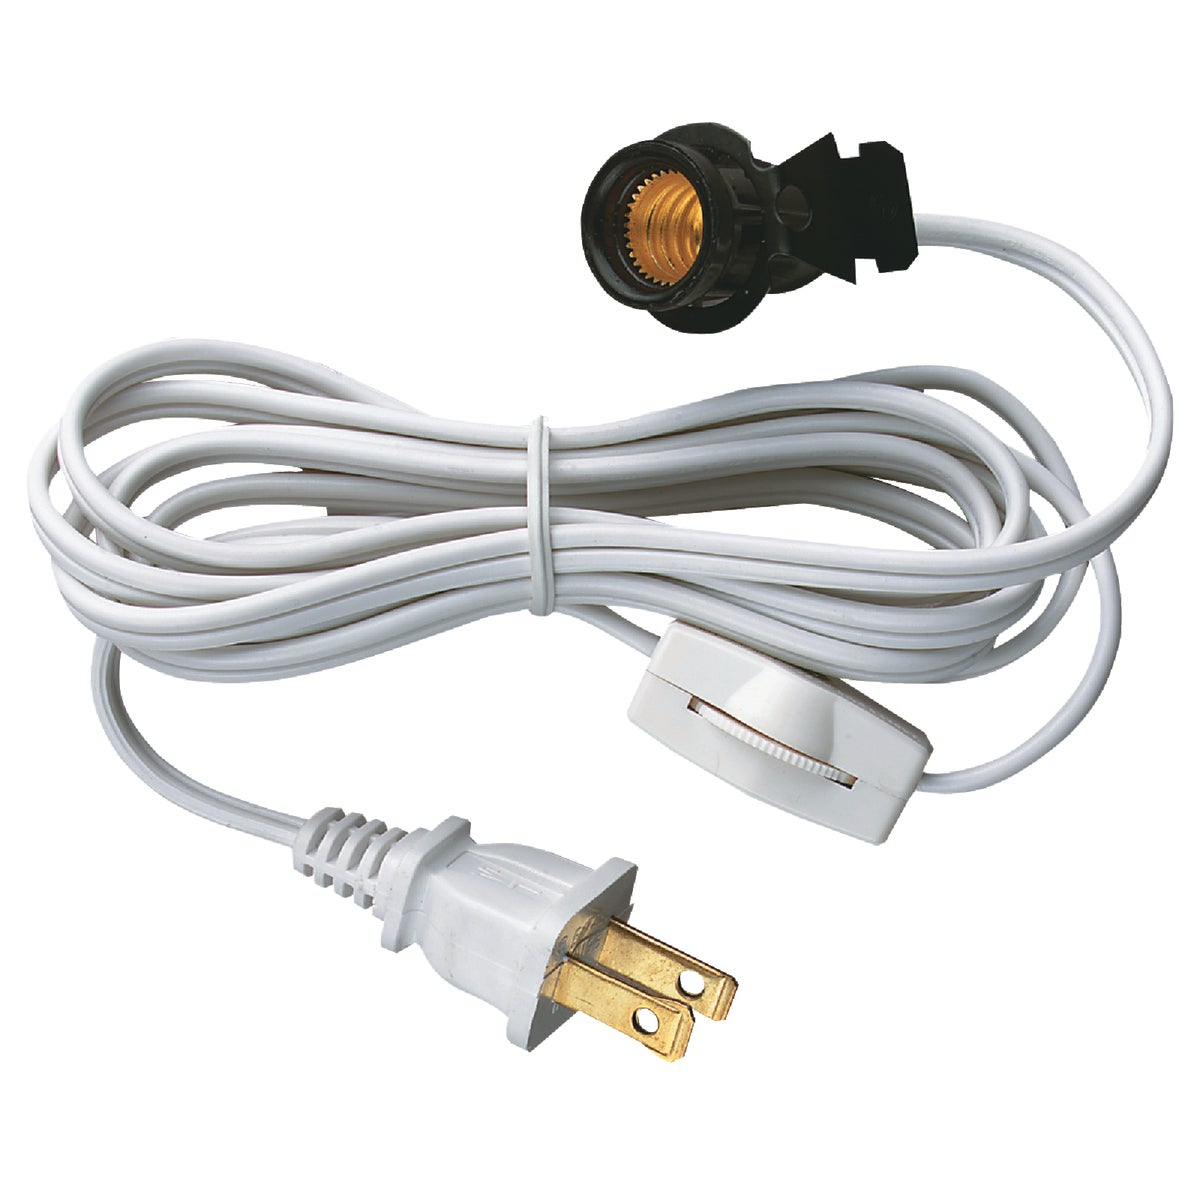 WHT SWITCH/CORD